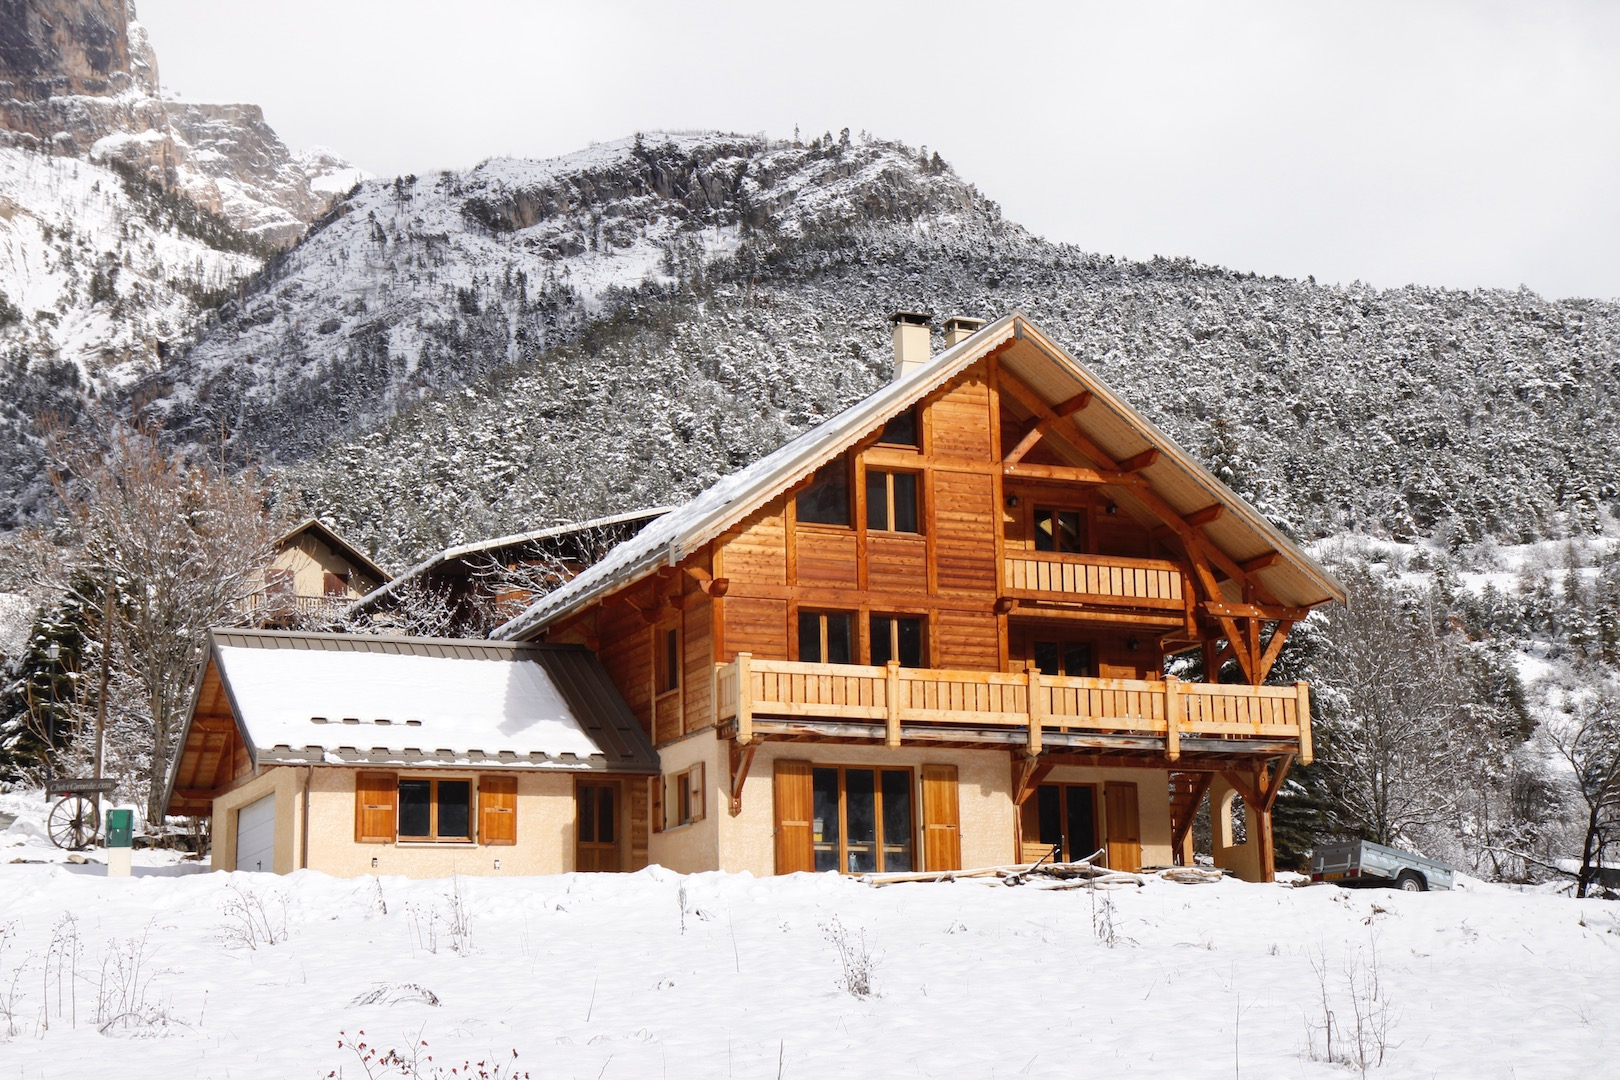 Chalet Sequoia in Grand Parcher, Vallouise sleeps up to 12